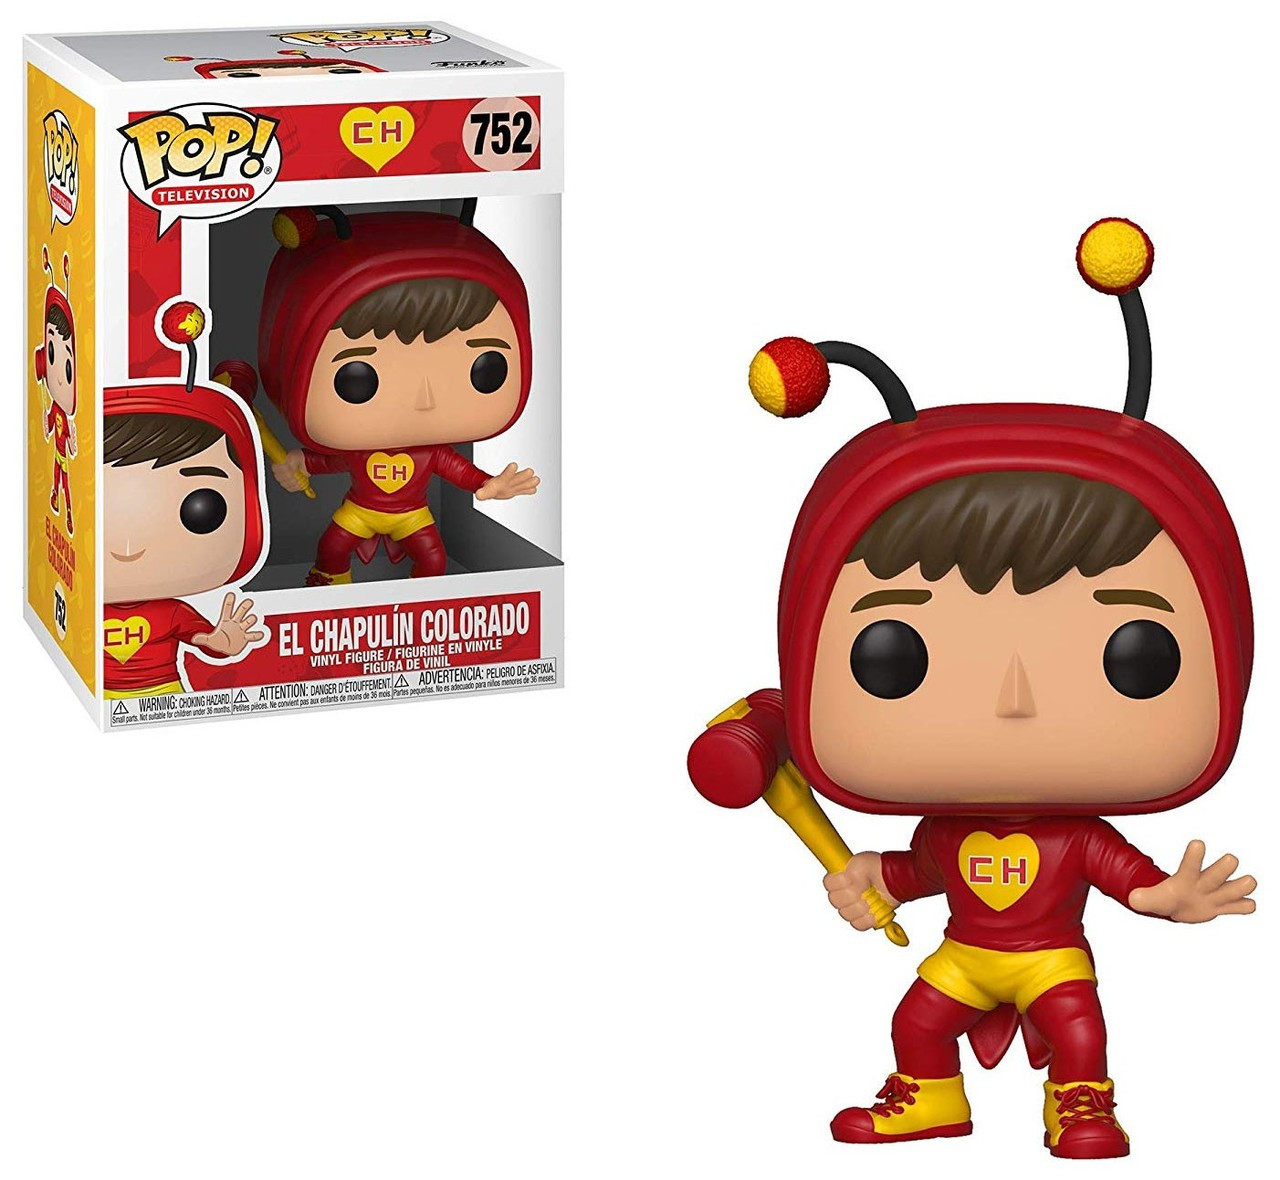 Funko Pop Television: Funko El Chavo Funko POP TV El Chapulin Colorado Vinyl